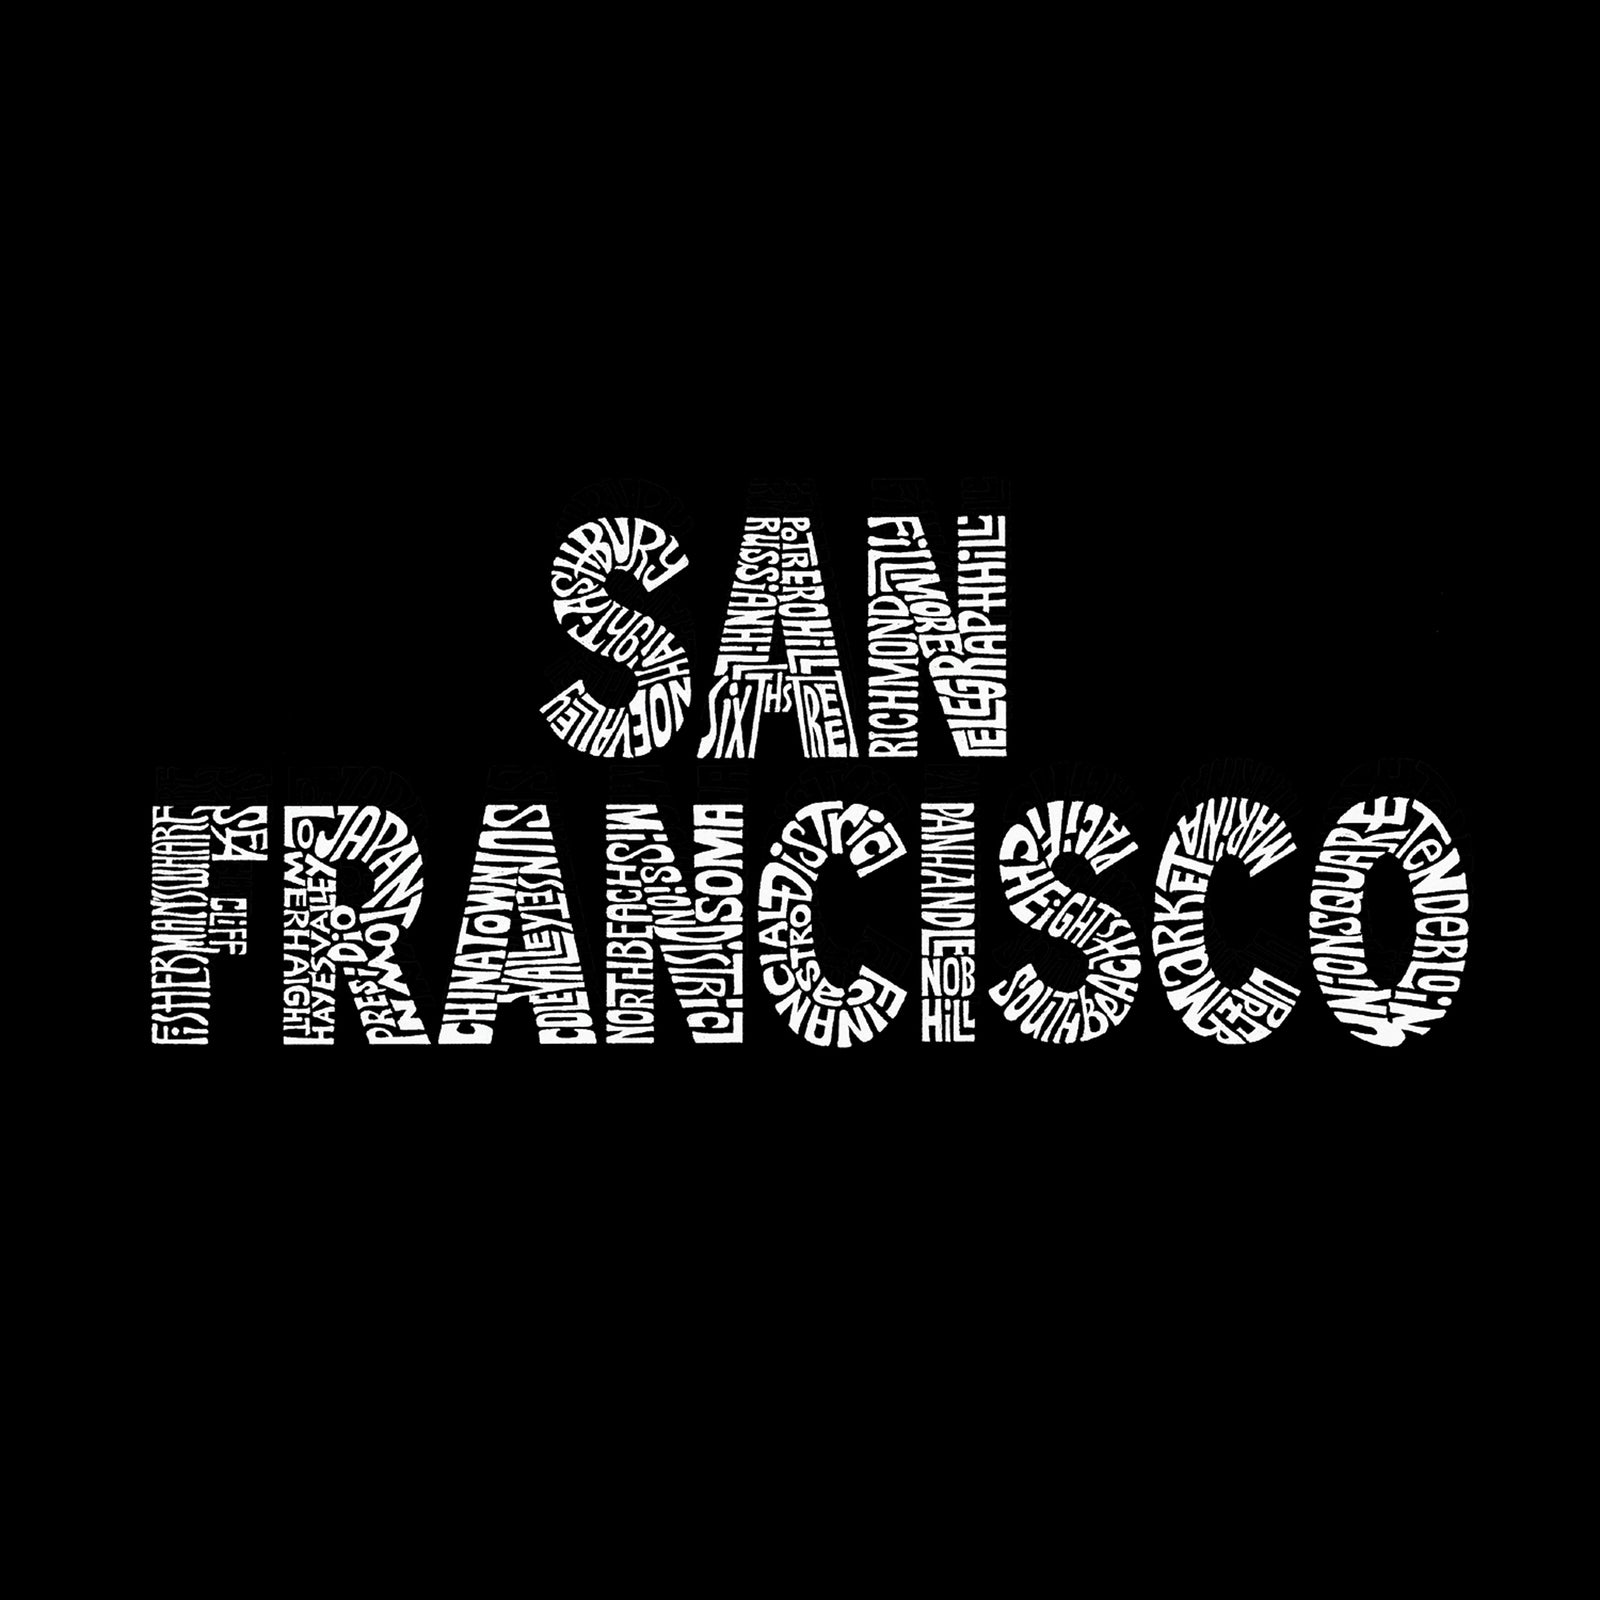 Men's Hooded Sweatshirt - SAN FRANCISCO NEIGHBORHOODS